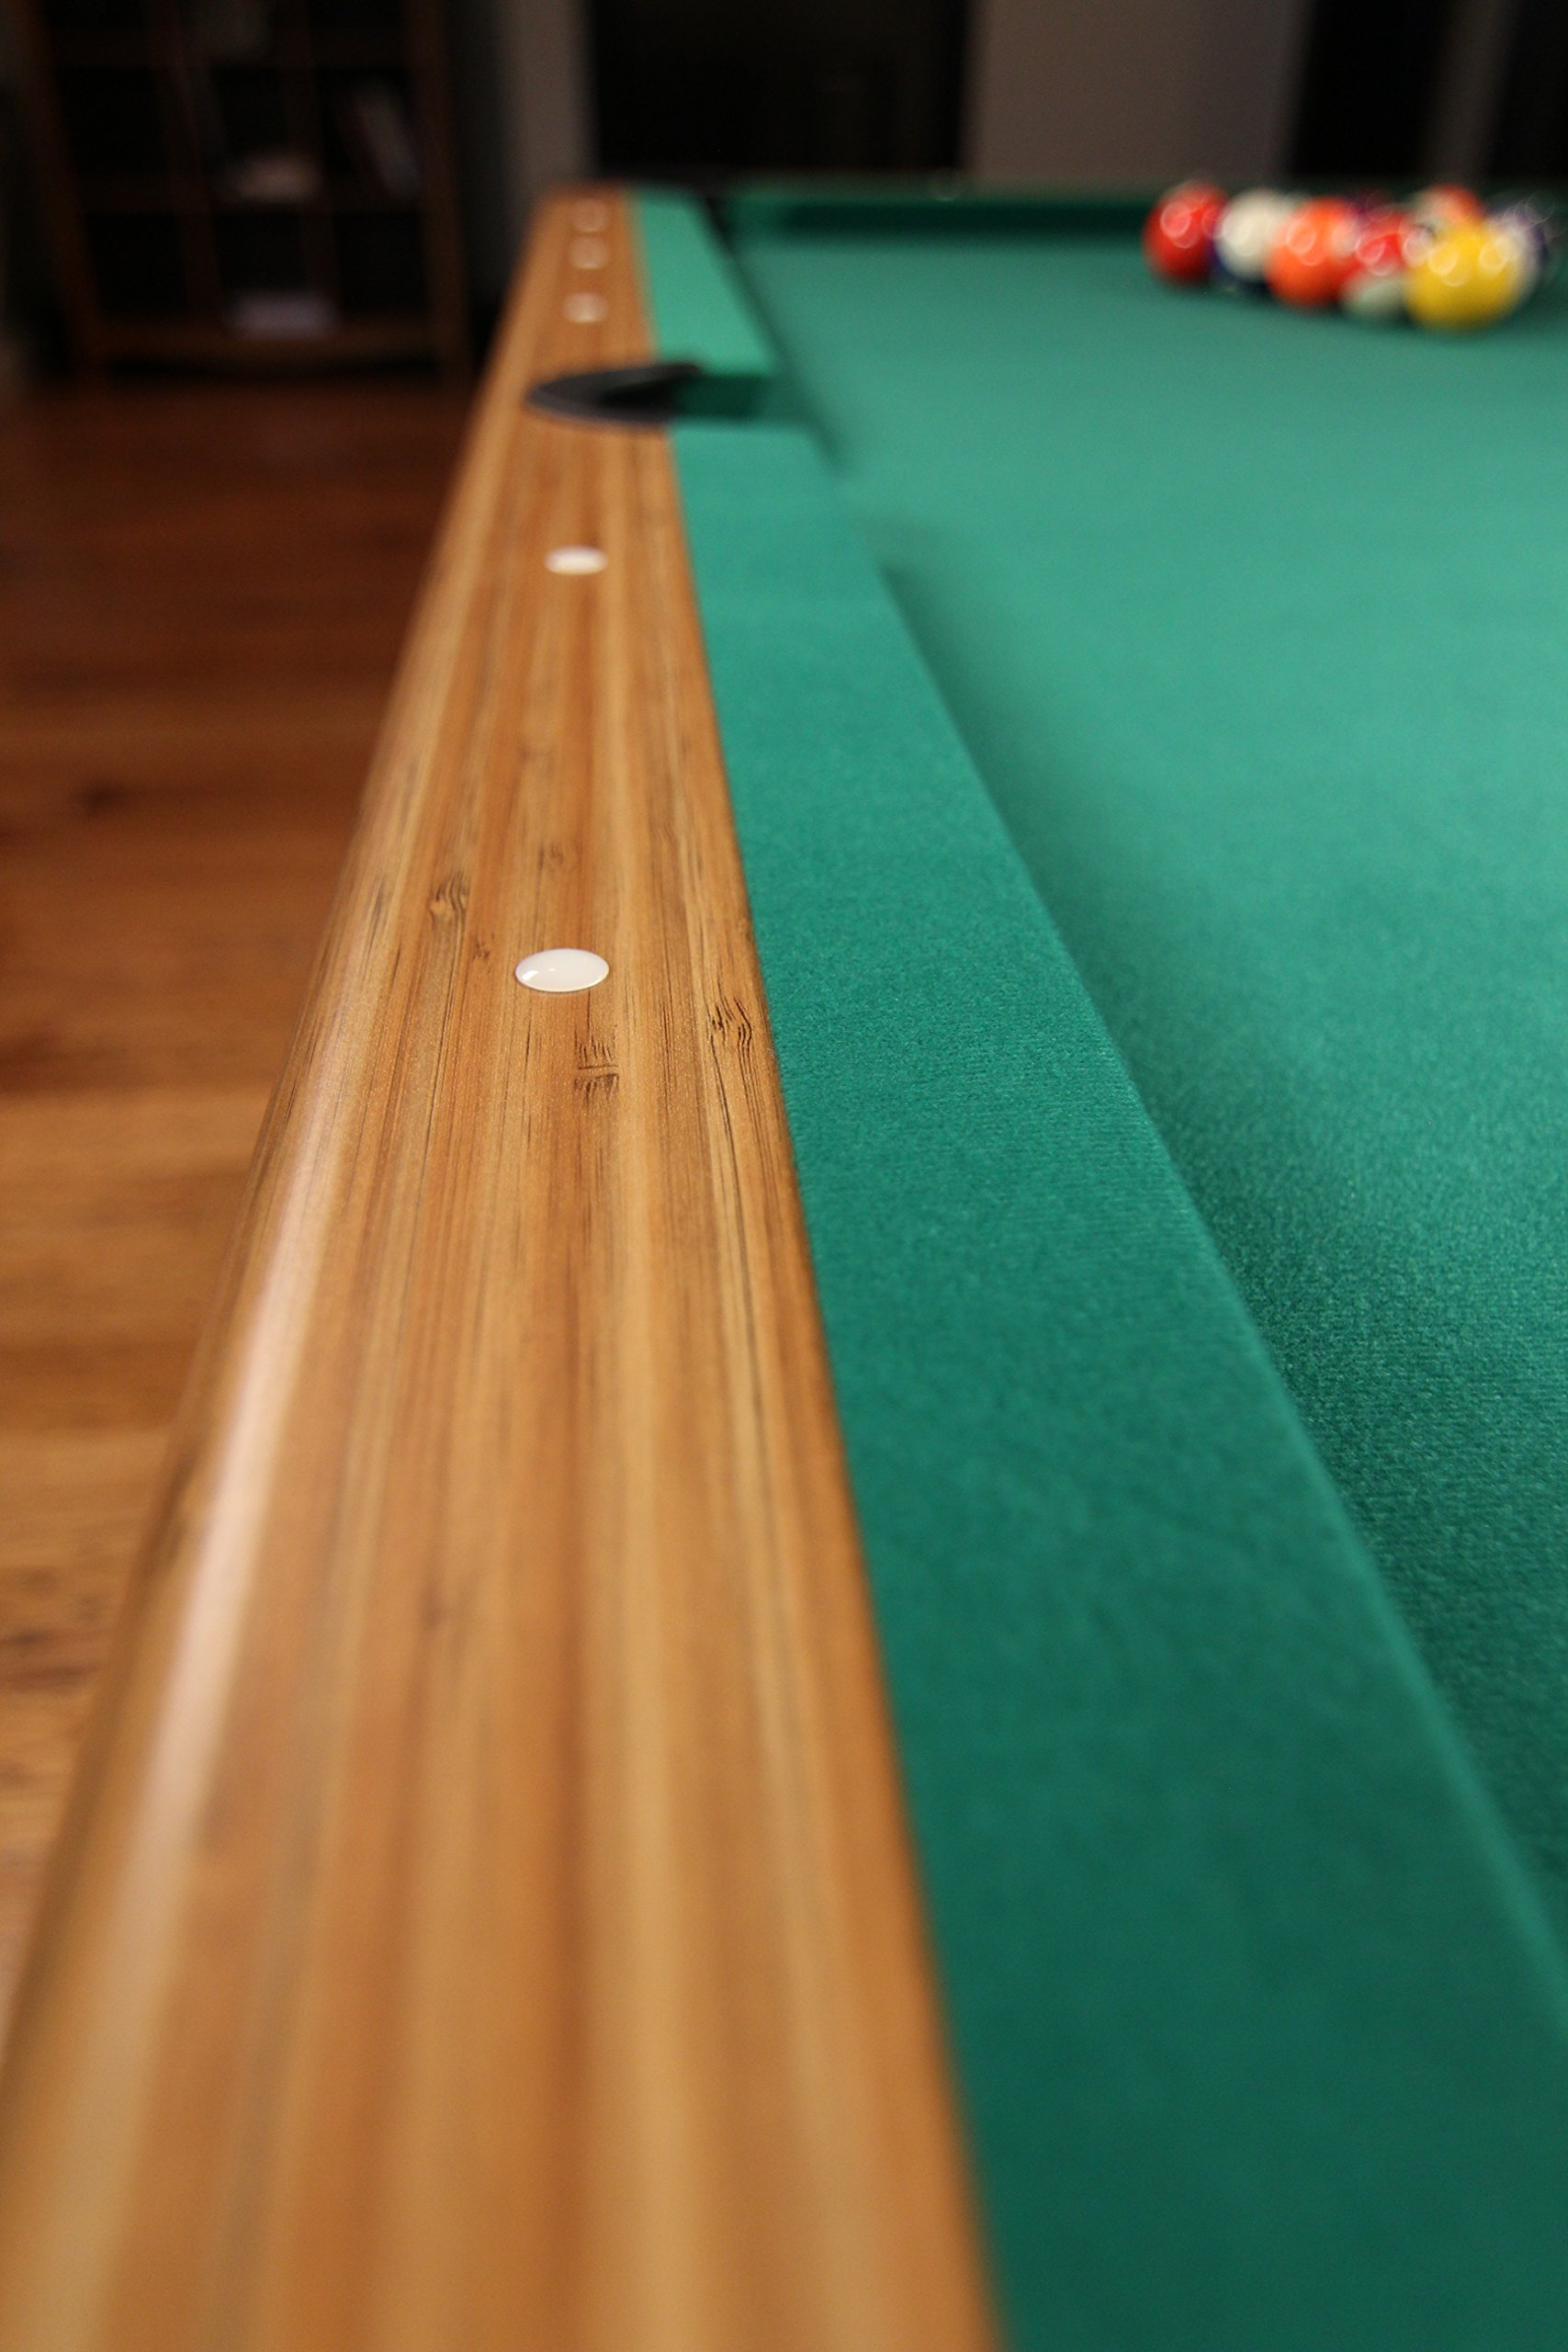 Mizerak Dynasty Space Saver 6.5' Billiard Table with Compact Design to Fit in Smaller Rooms, Leg Levelers for Perfectly Even Playing Surface, Double-sealed MDF Play-bed for Consistent Roll and Automatic Ball Return for Quick Game Reset by Mizerak (Image #10)